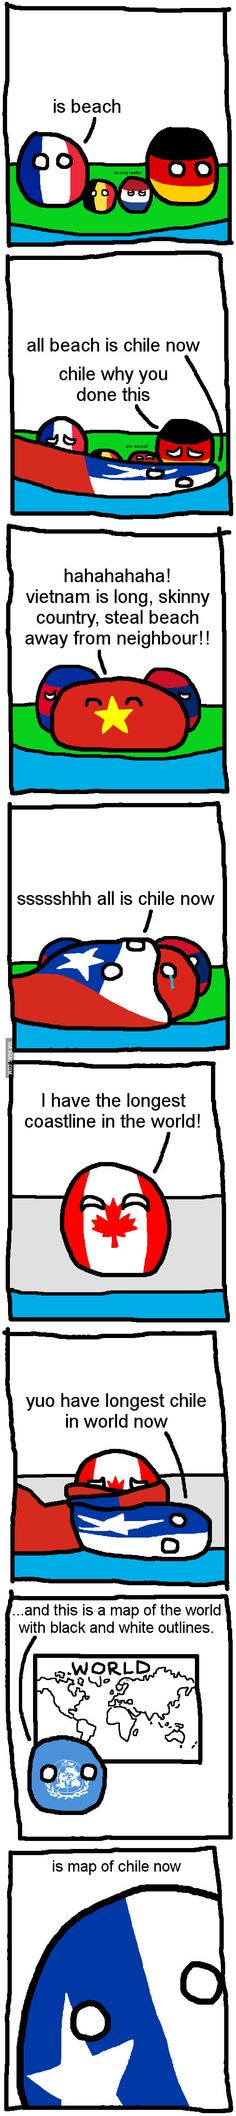 This is a Post in 9gag. all is chile now...